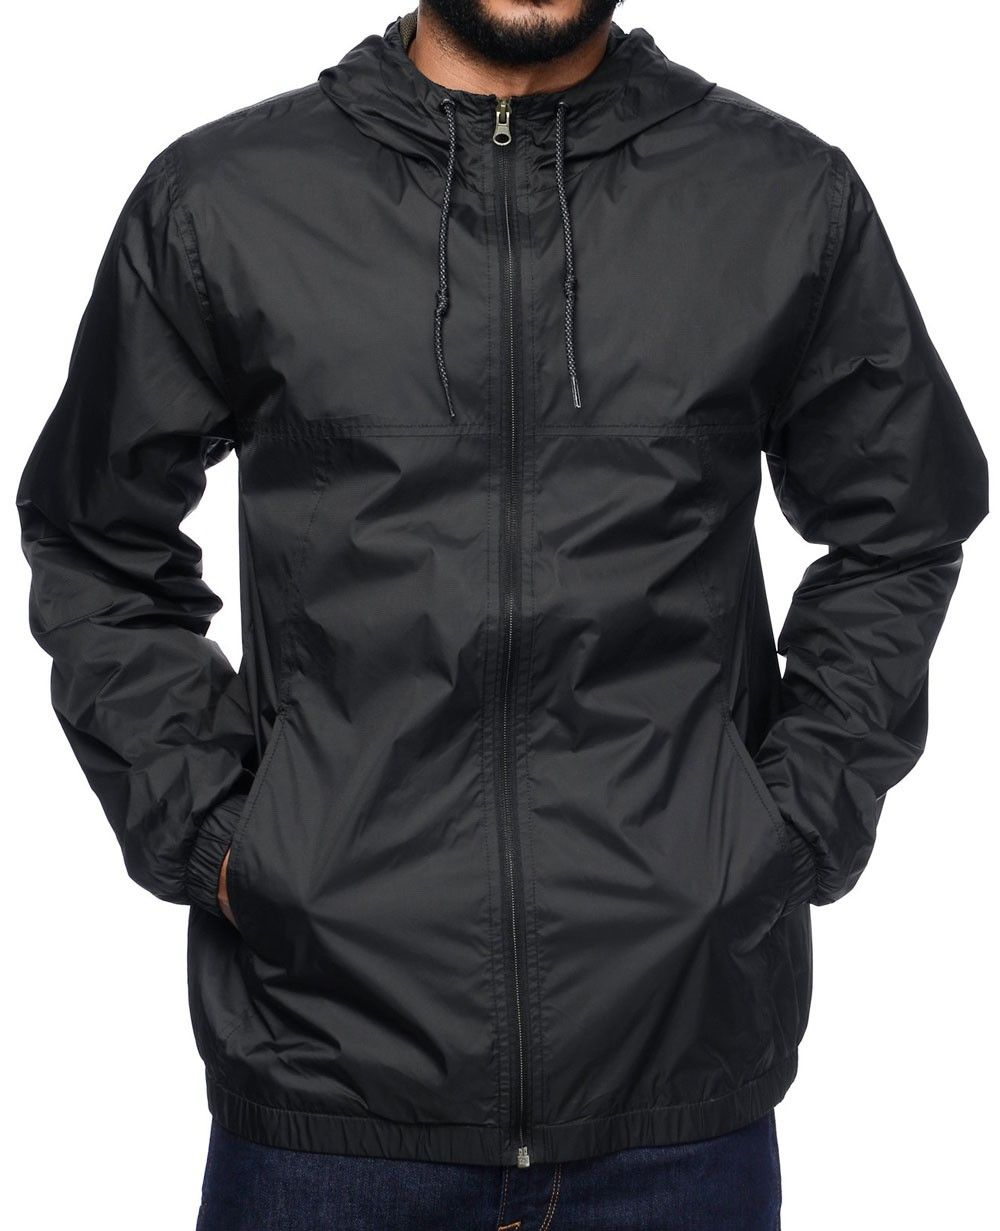 http://www.quickapparels.com/men-stylish-black-windbreaker-jacket